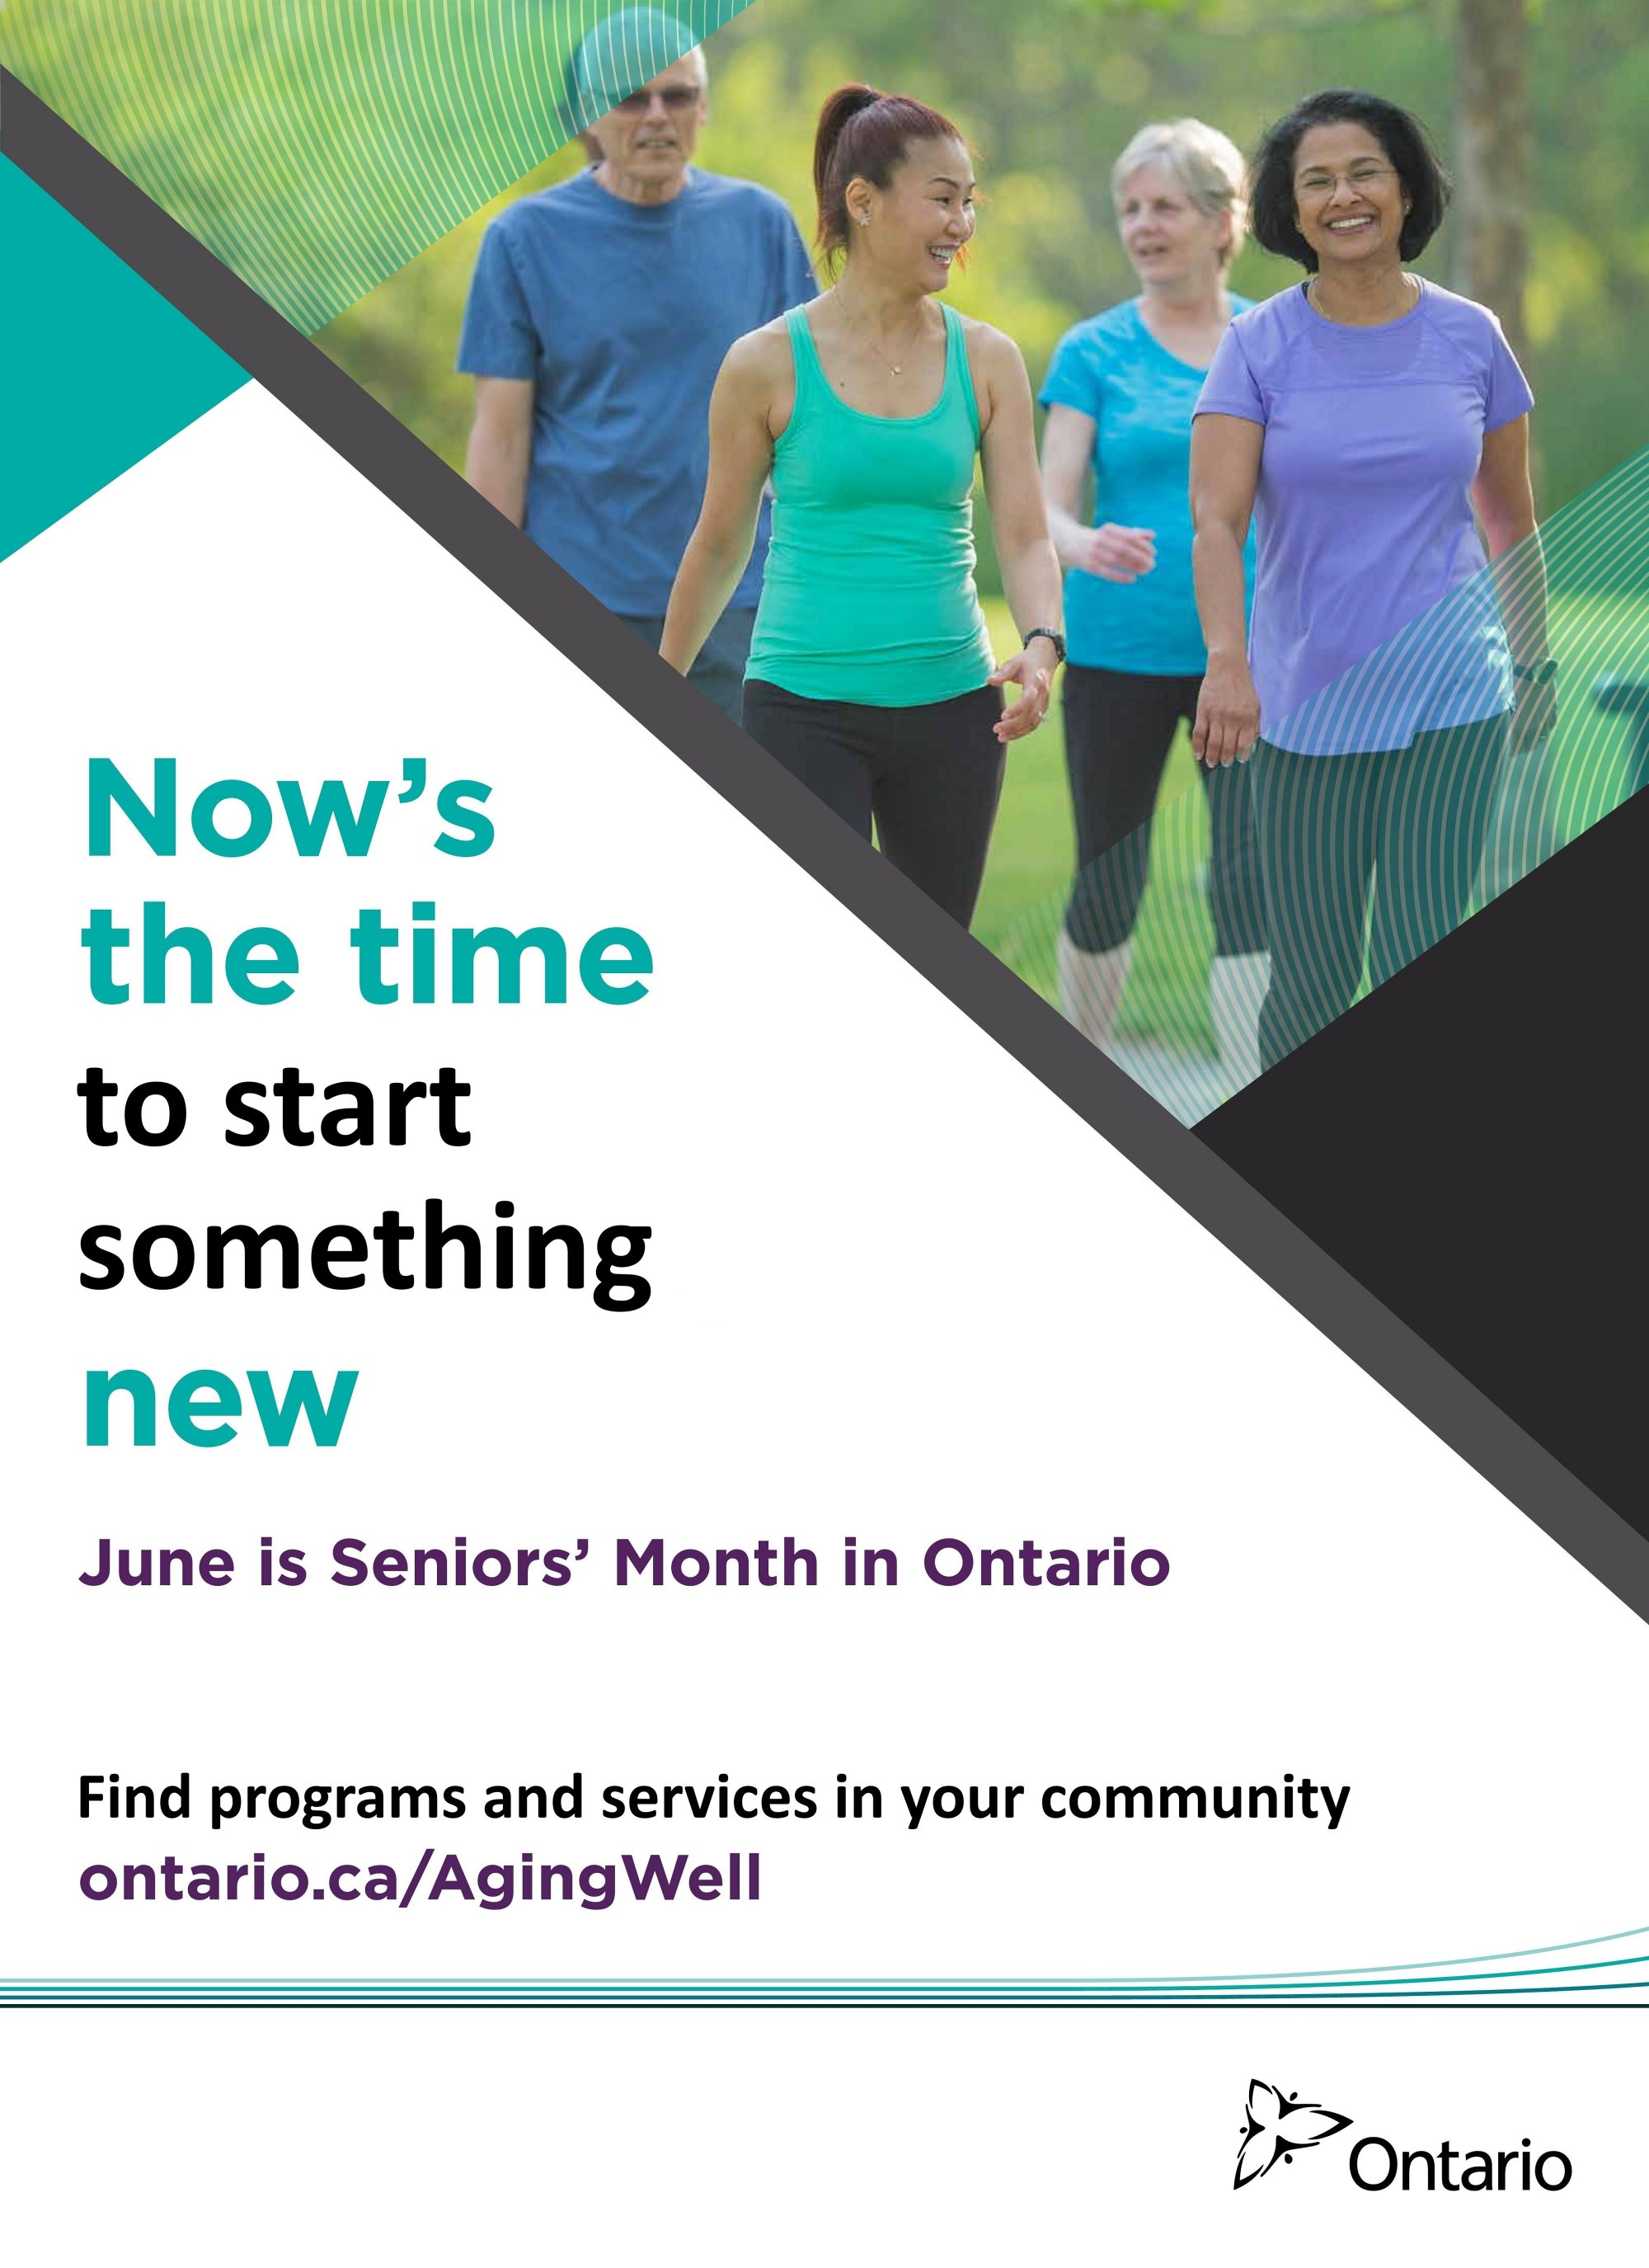 Seniors Month Poster 2018 image from email Ontario Age-Friendly Communities Outreach Program swebster@seniorshealthknowledgenetwork.com To:sq1oacatahoo.ca May 4, 2018 at 3:49 pm